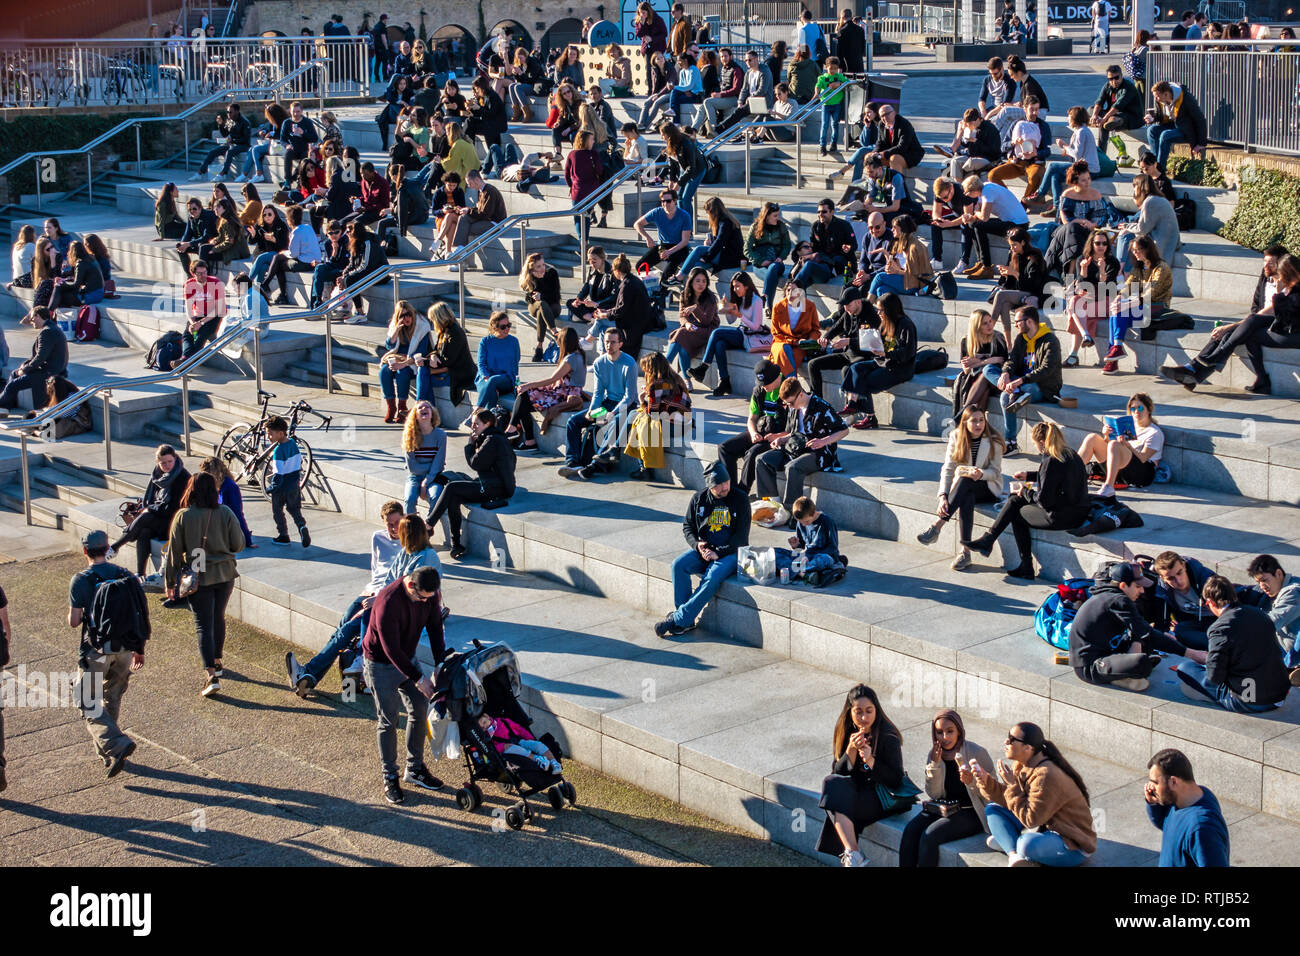 Many people sitting in the sun on steps next to the Regents Canal in front of Coal Drops Yard, Kings Cross, London, England Stock Photo